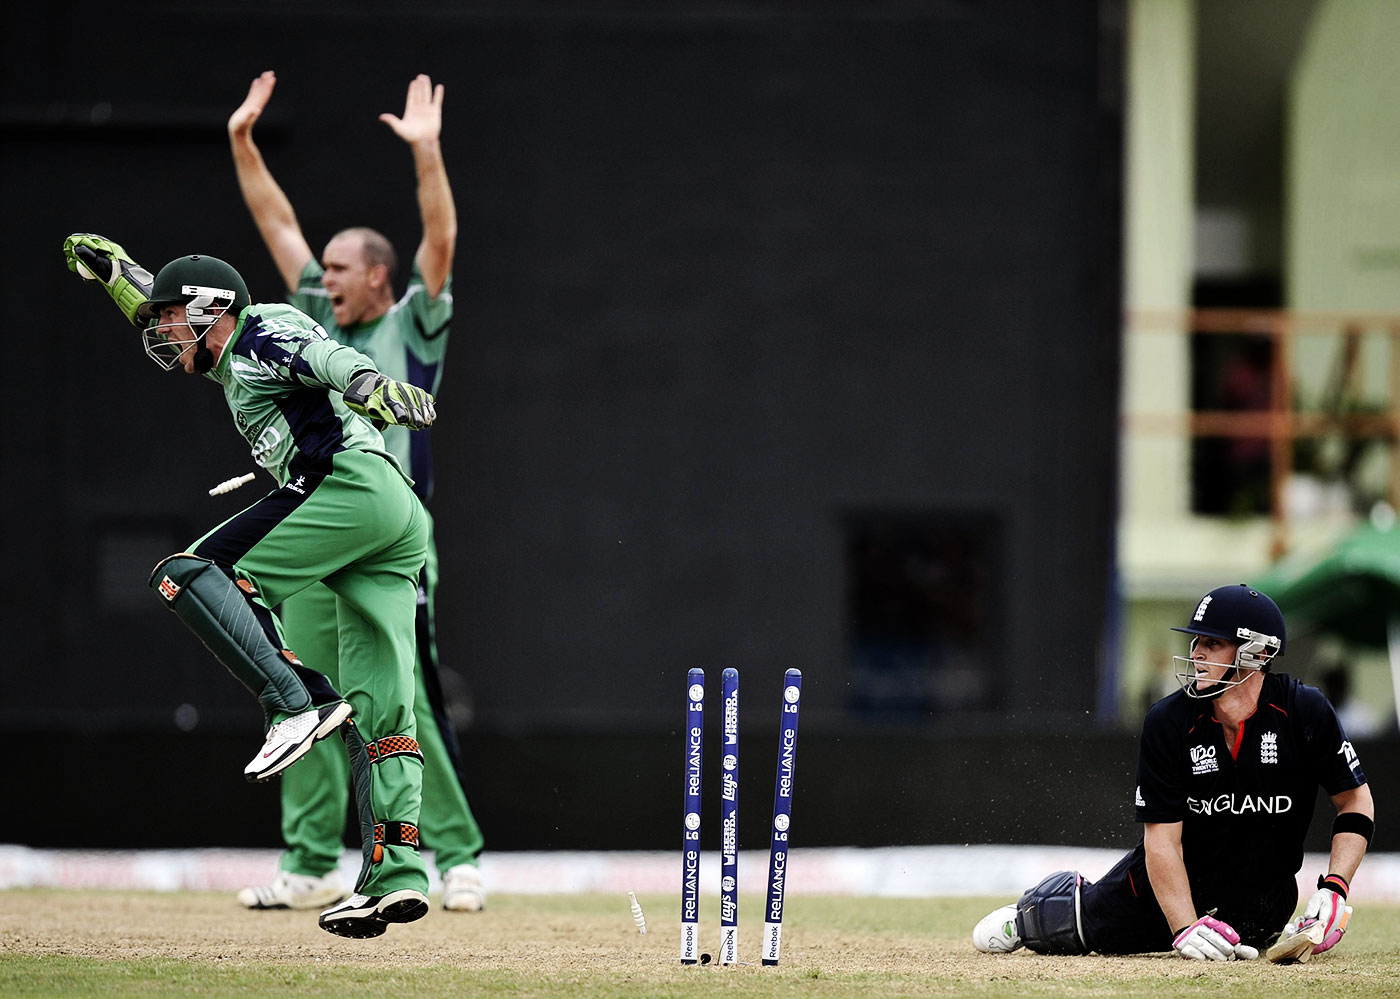 Craig Kieswetter, one of England's top scorers in the 2010 World T20, was run out for 13 in their match against Ireland